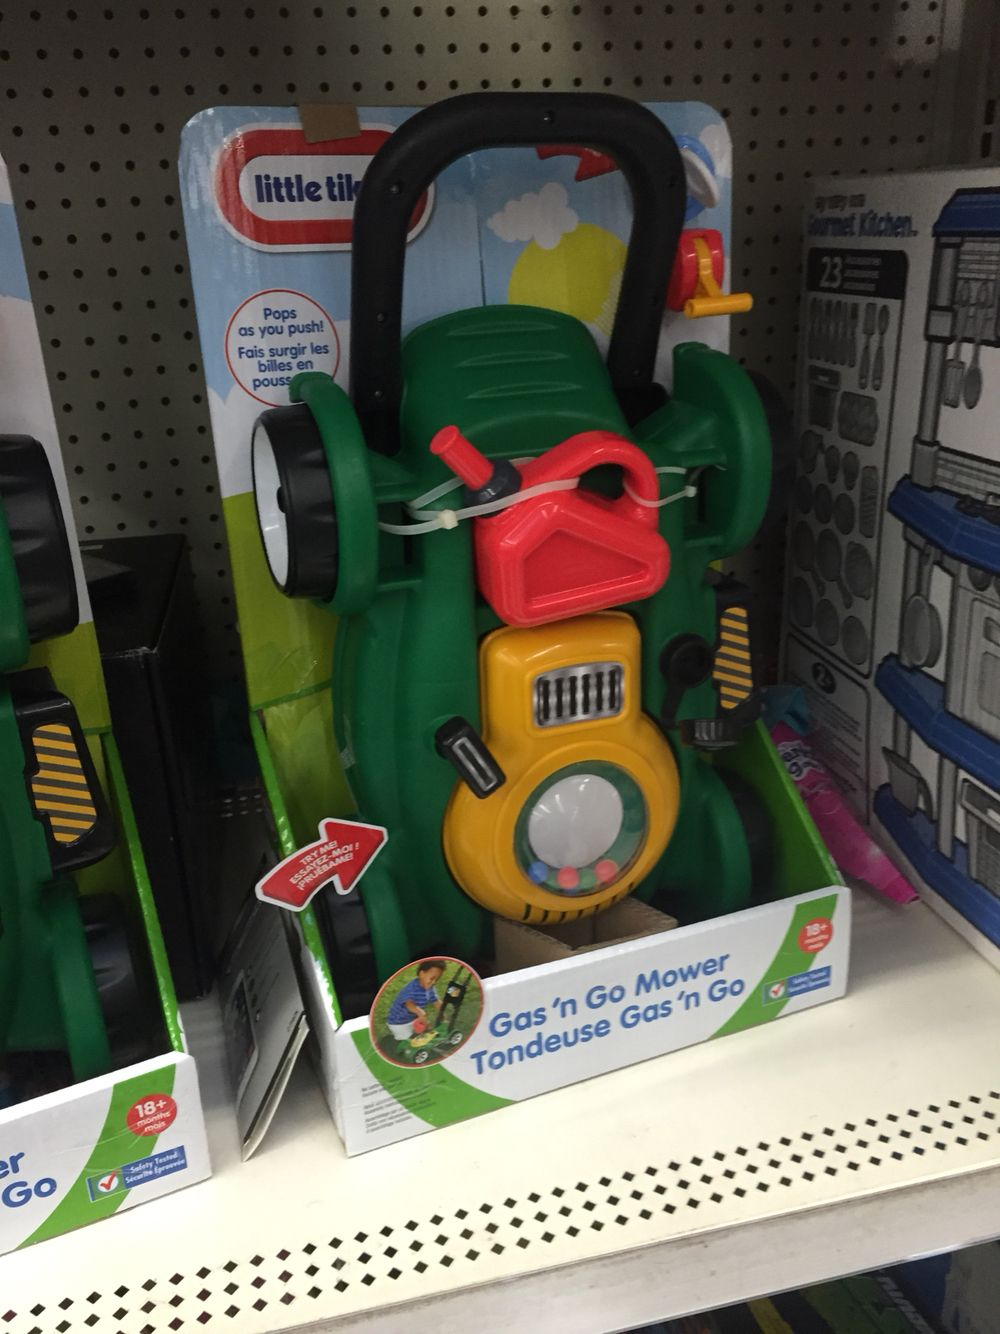 Birthday Return Gifts Anniversary Toy Lawn Mower At Walmart Near The Electronics On Back Shelves In Section